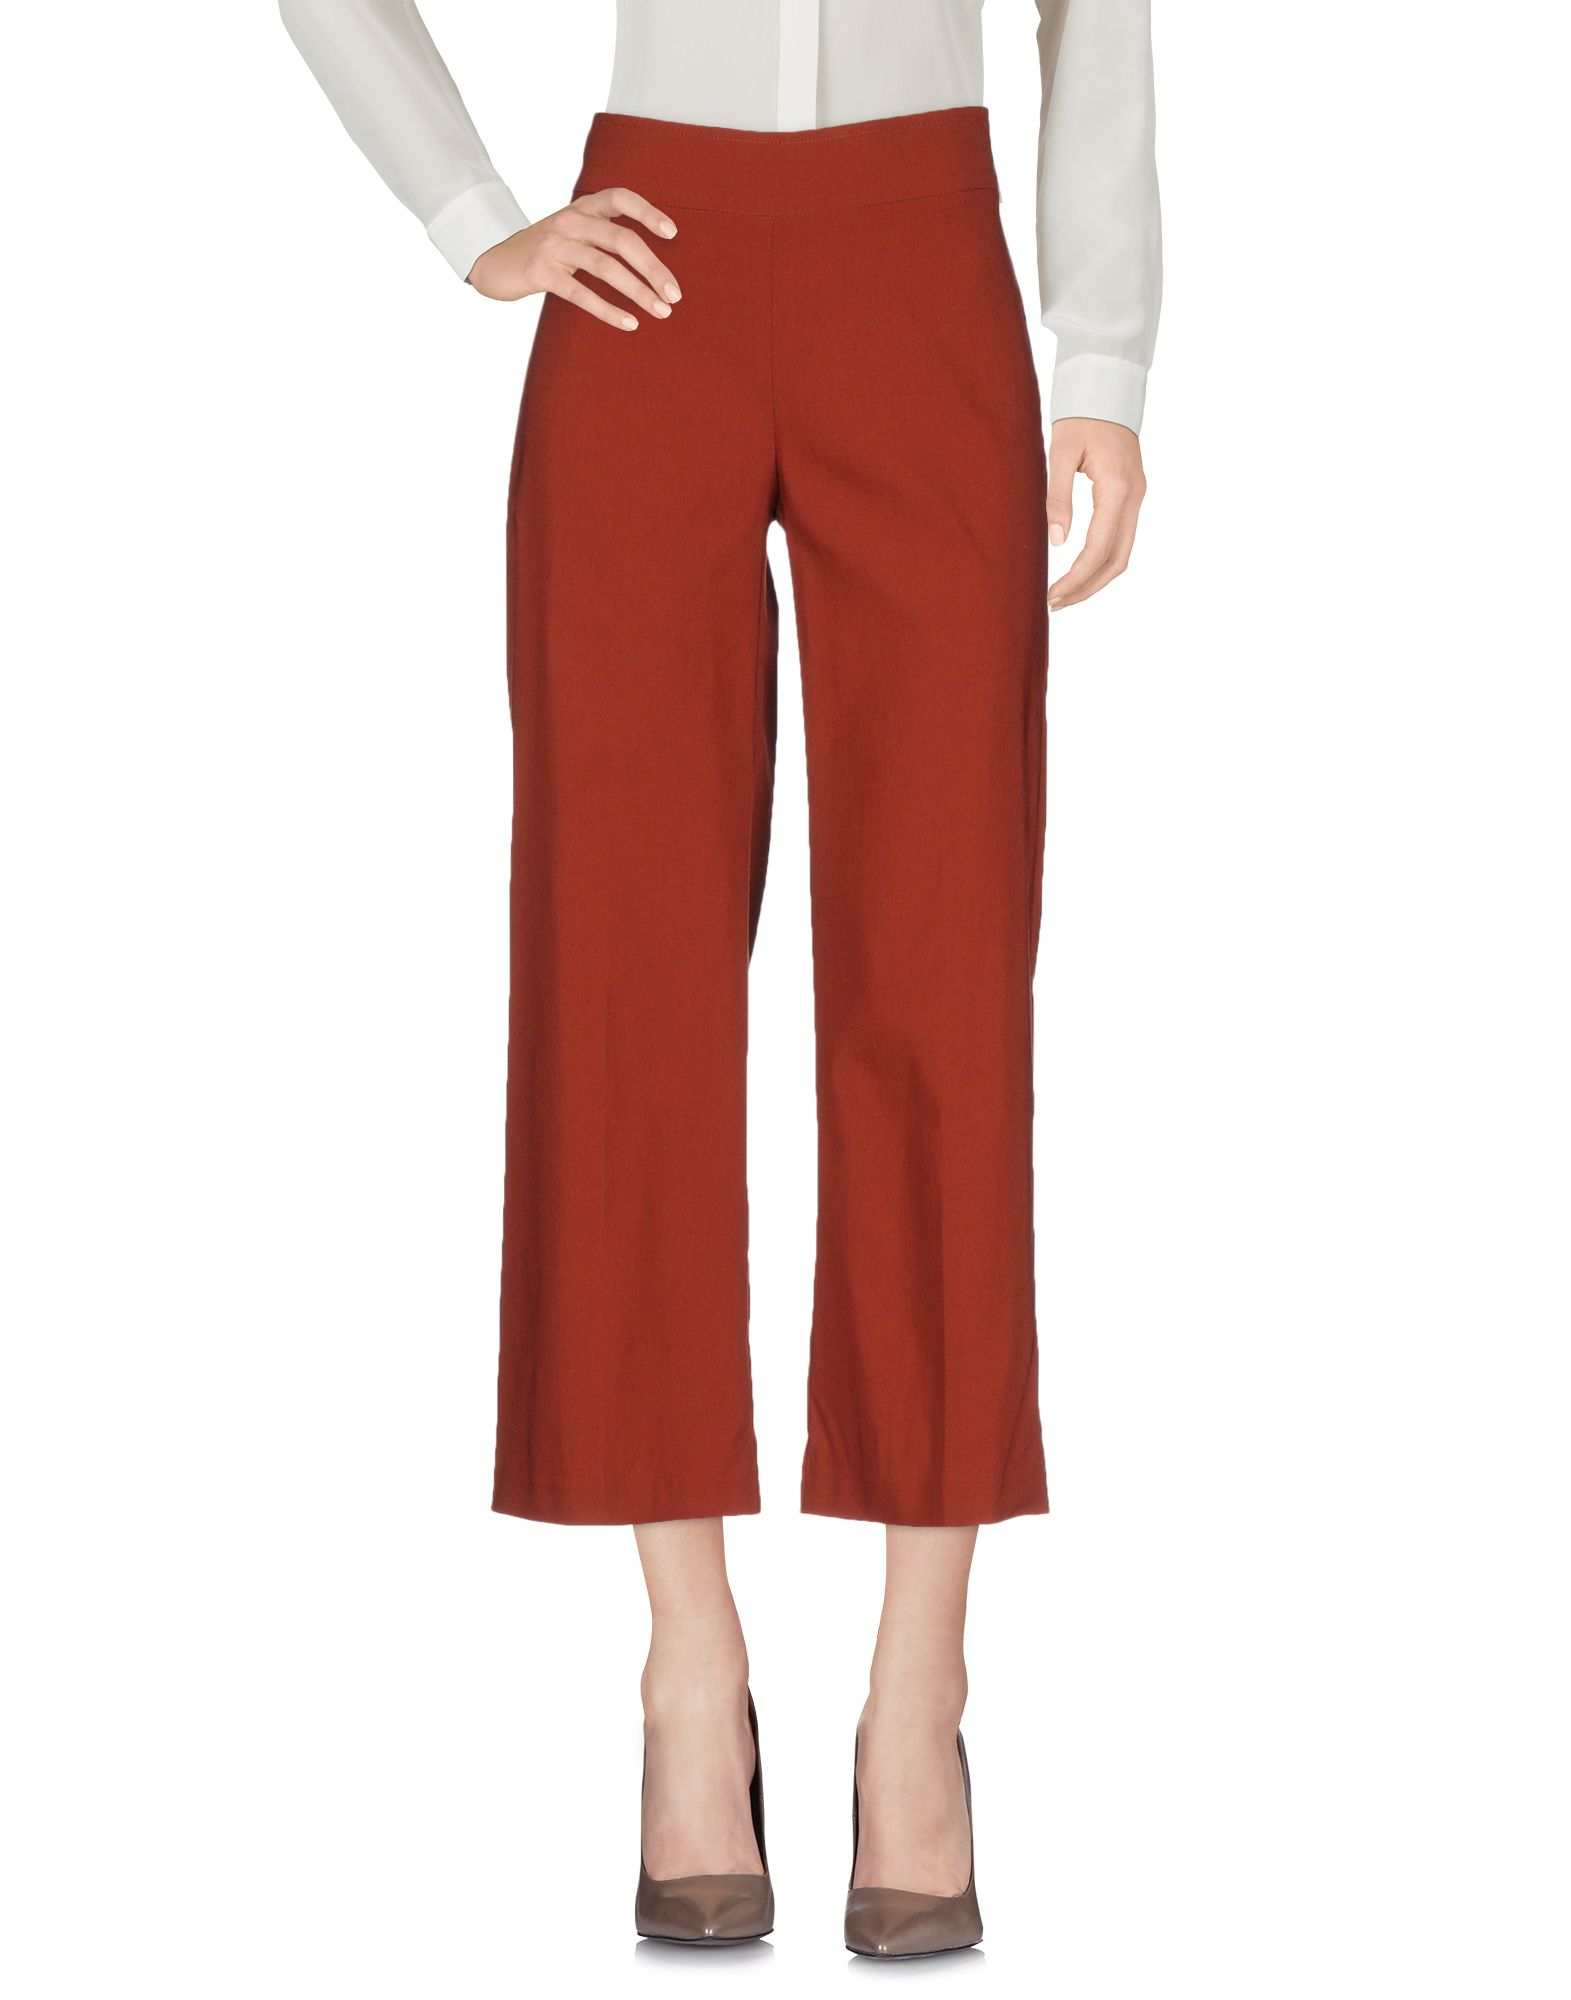 AVENUE MONTAIGNE Cropped Pants & Culottes in Brown